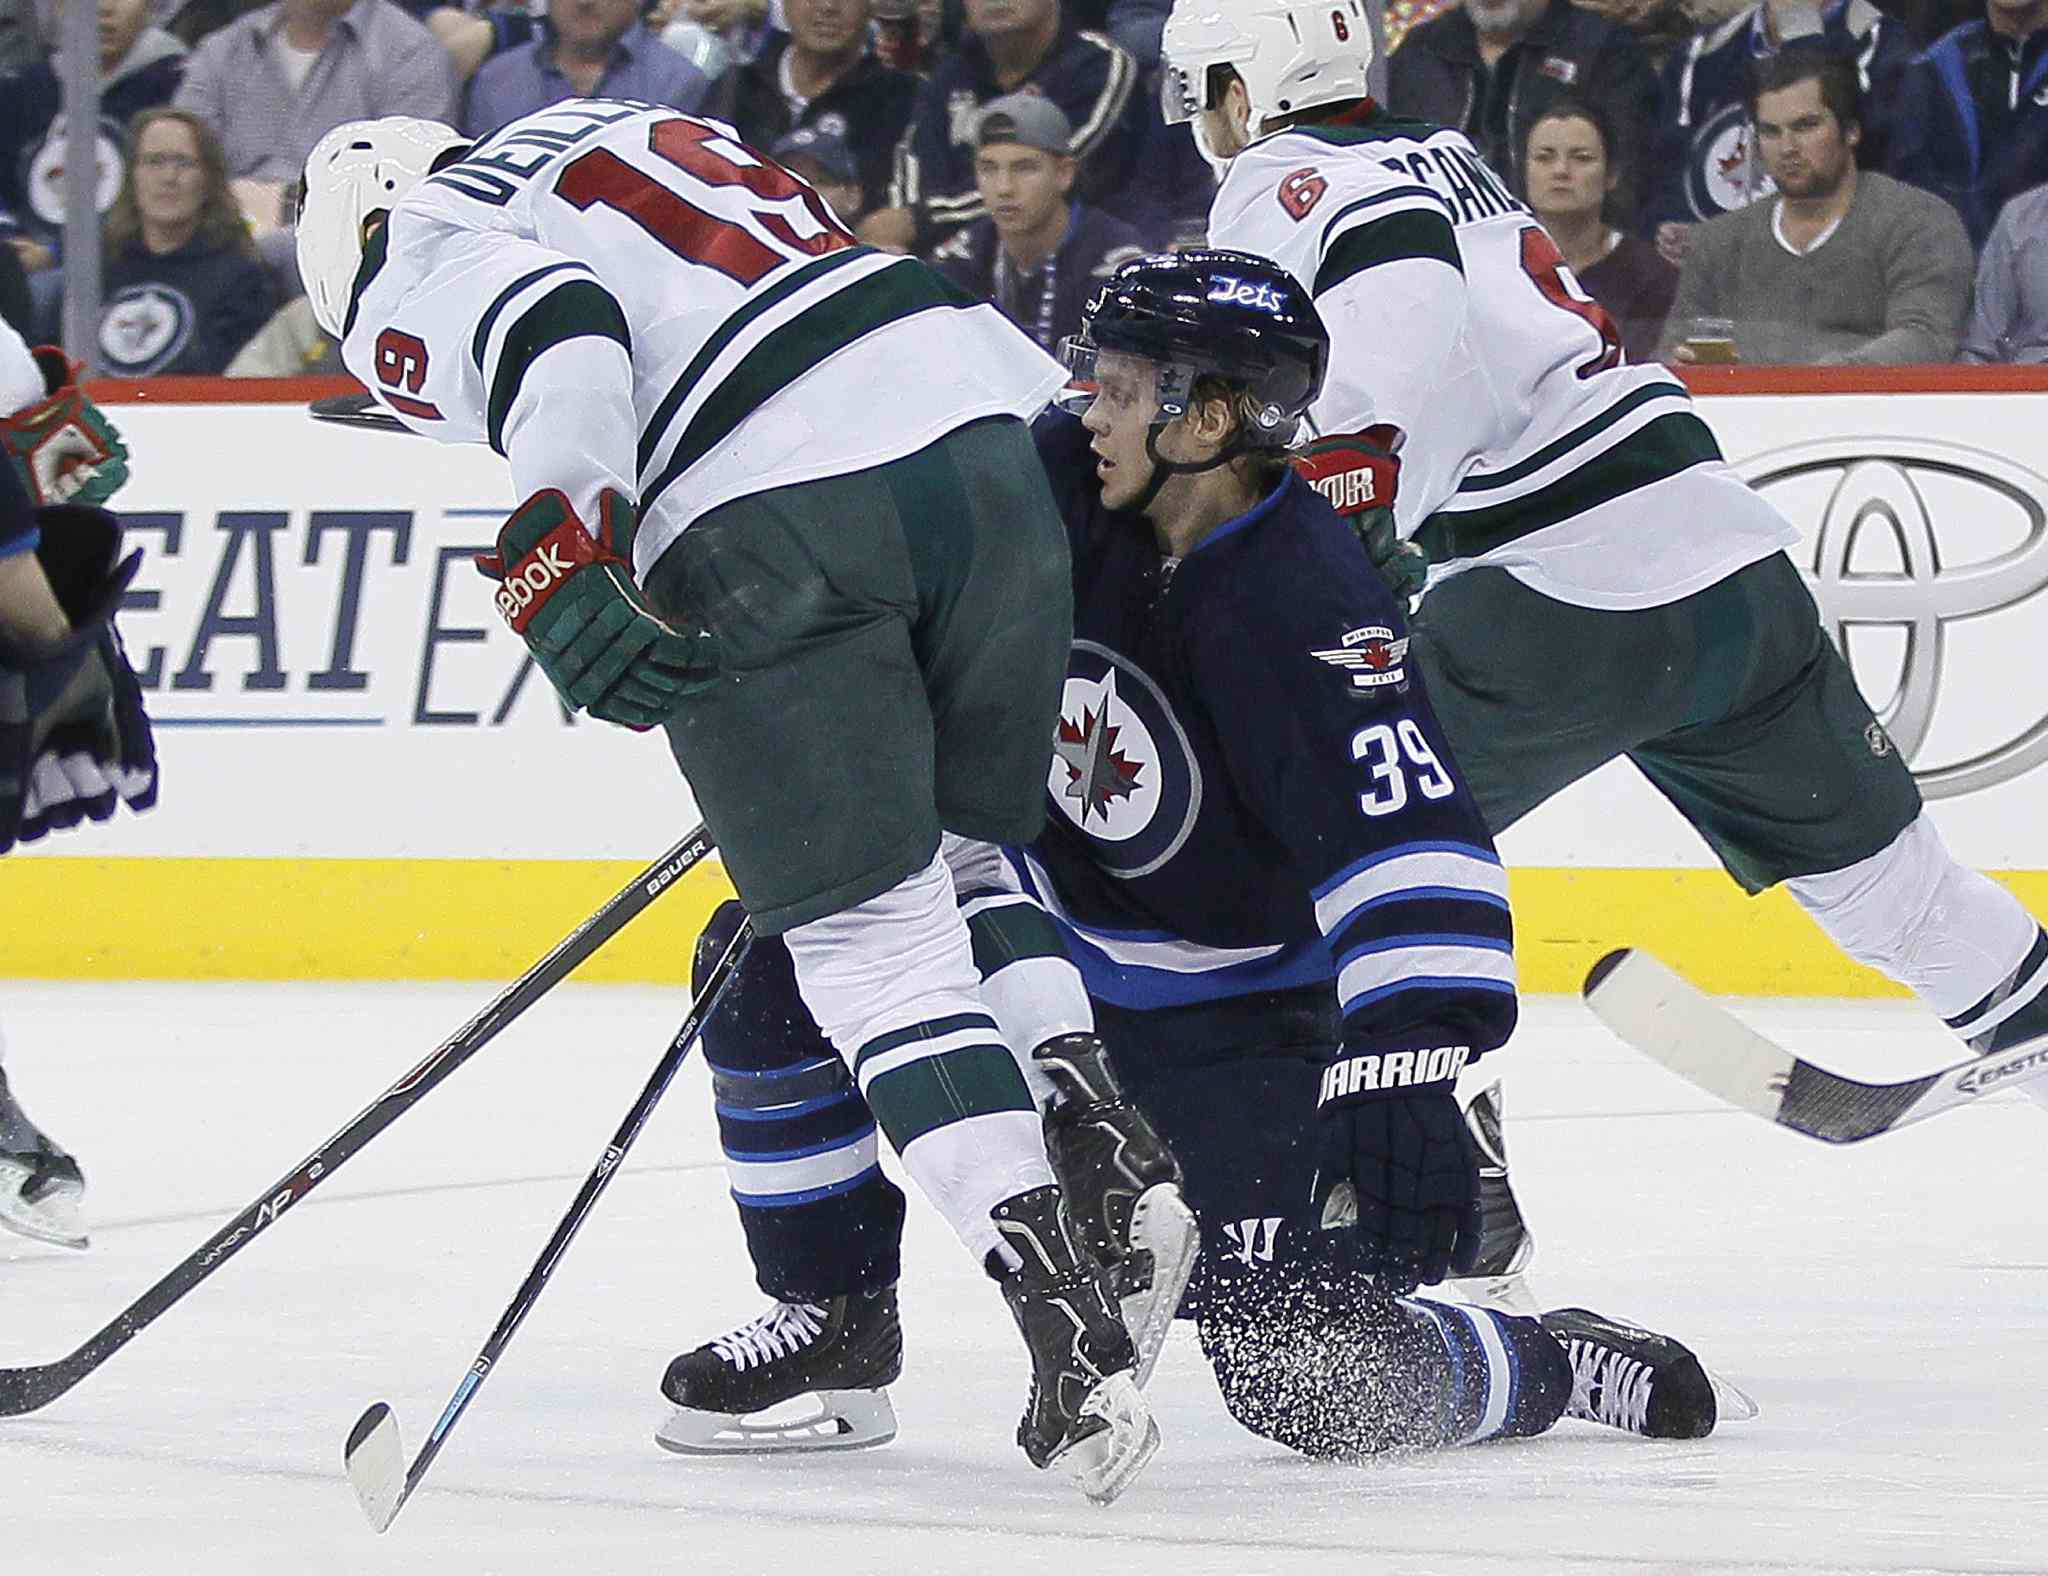 Minnesota's Stephane Veilleux gets checked by Jets defenceman Tobias Enstrom during second-period play.